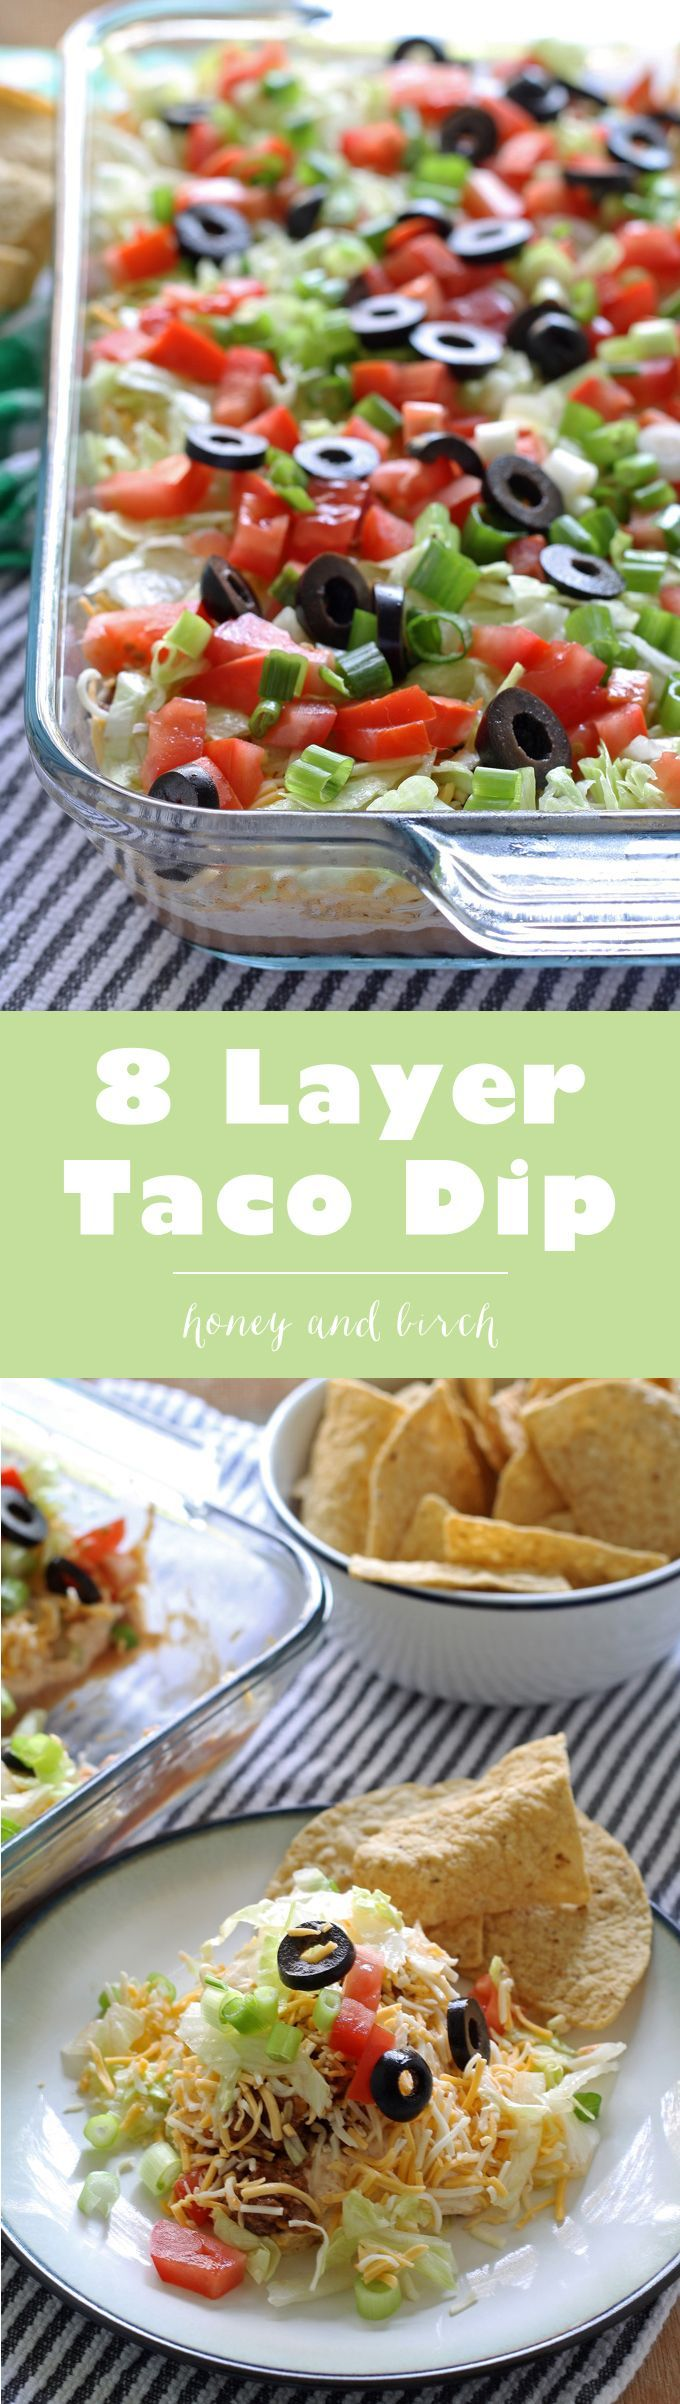 Go big with this 8 layer taco dip recipe – it is the perfect appetizer for large crowds. It's full of meat, cheese, veggies and more! | honeyandbirch.com